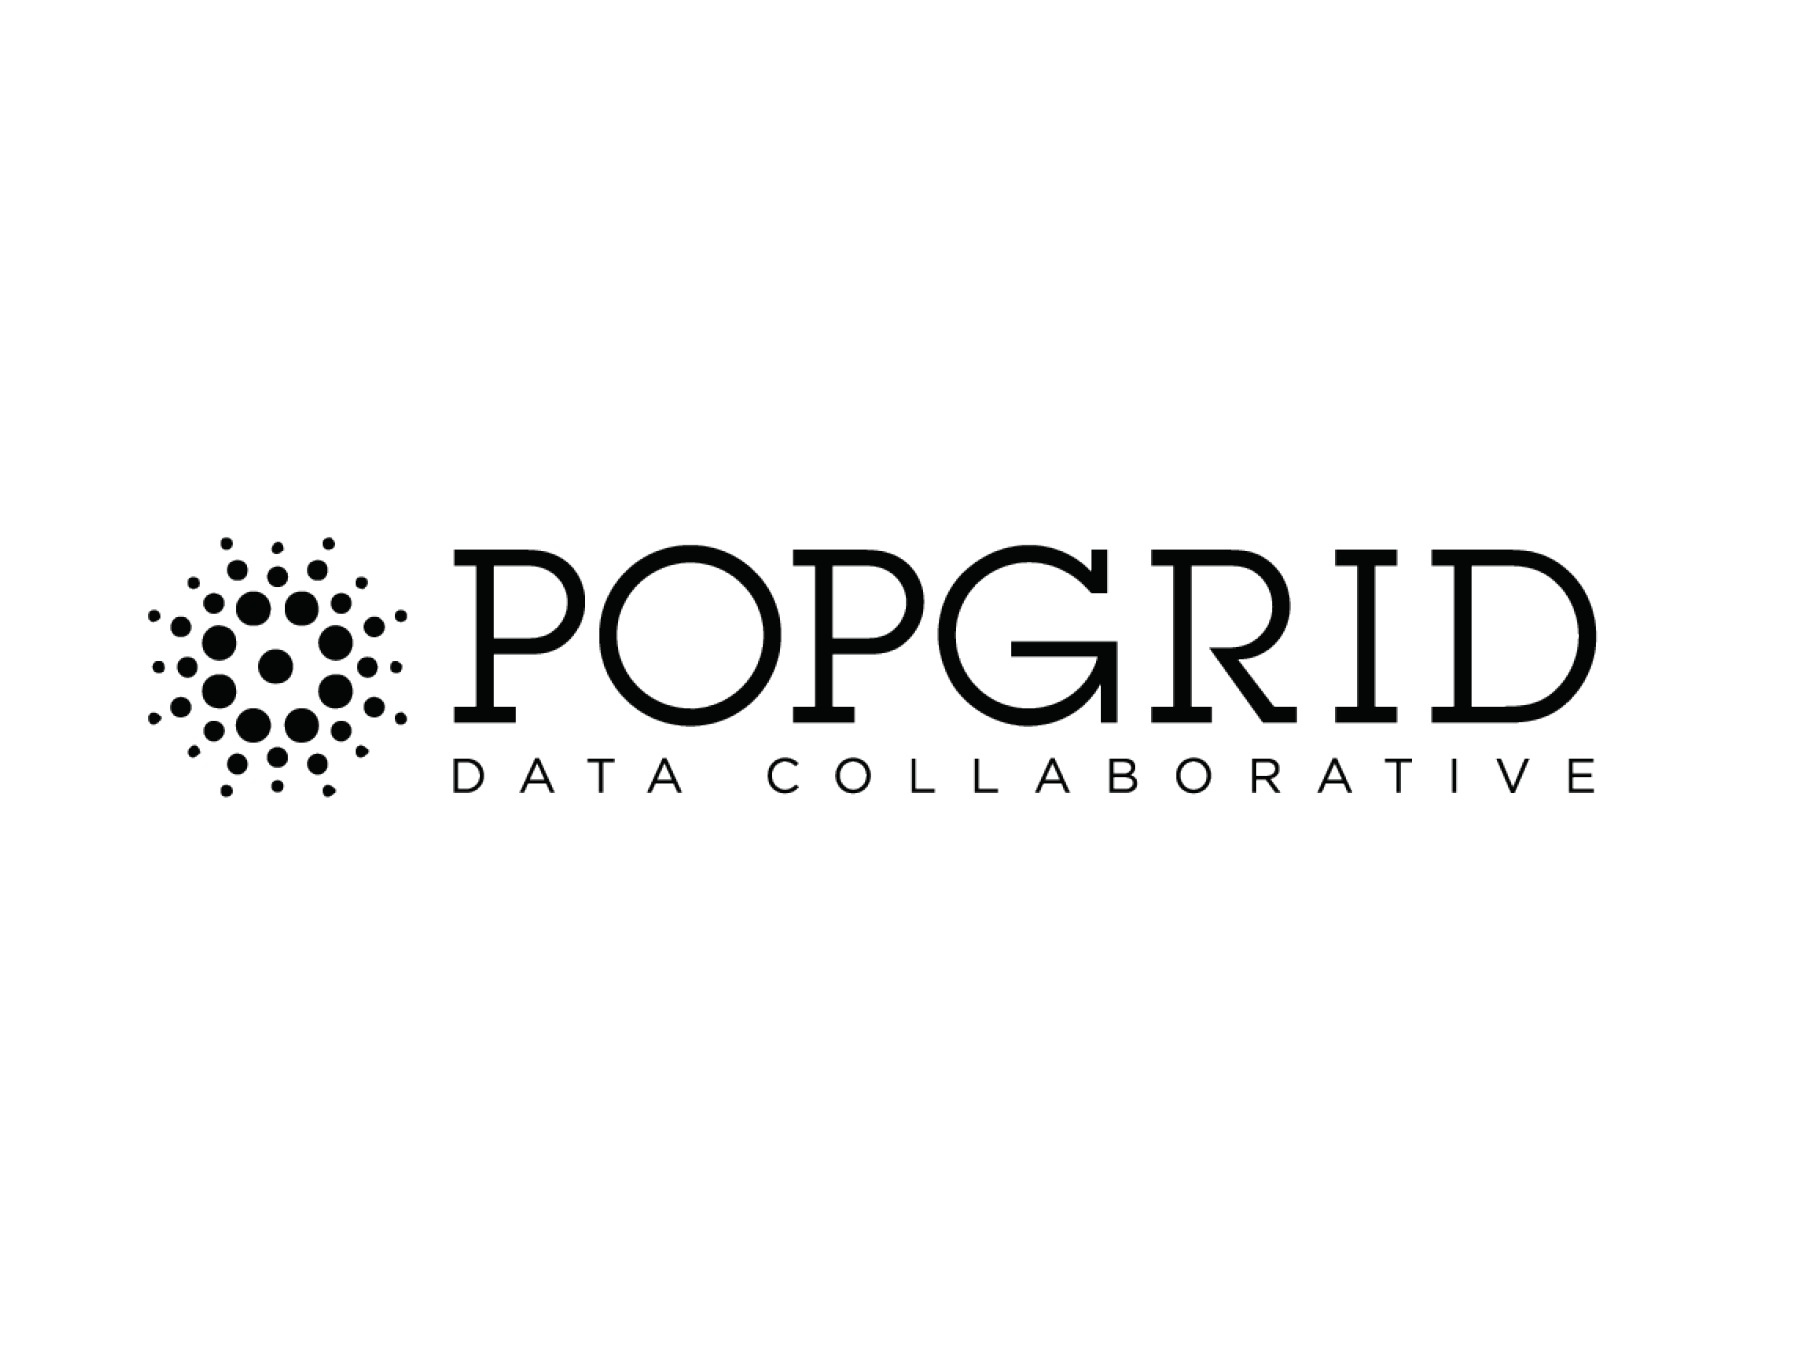 POPGRID - A collaborative community of data producers, users, and other partners sharing geo-referenced data on population, human settlements, and infrastructure.